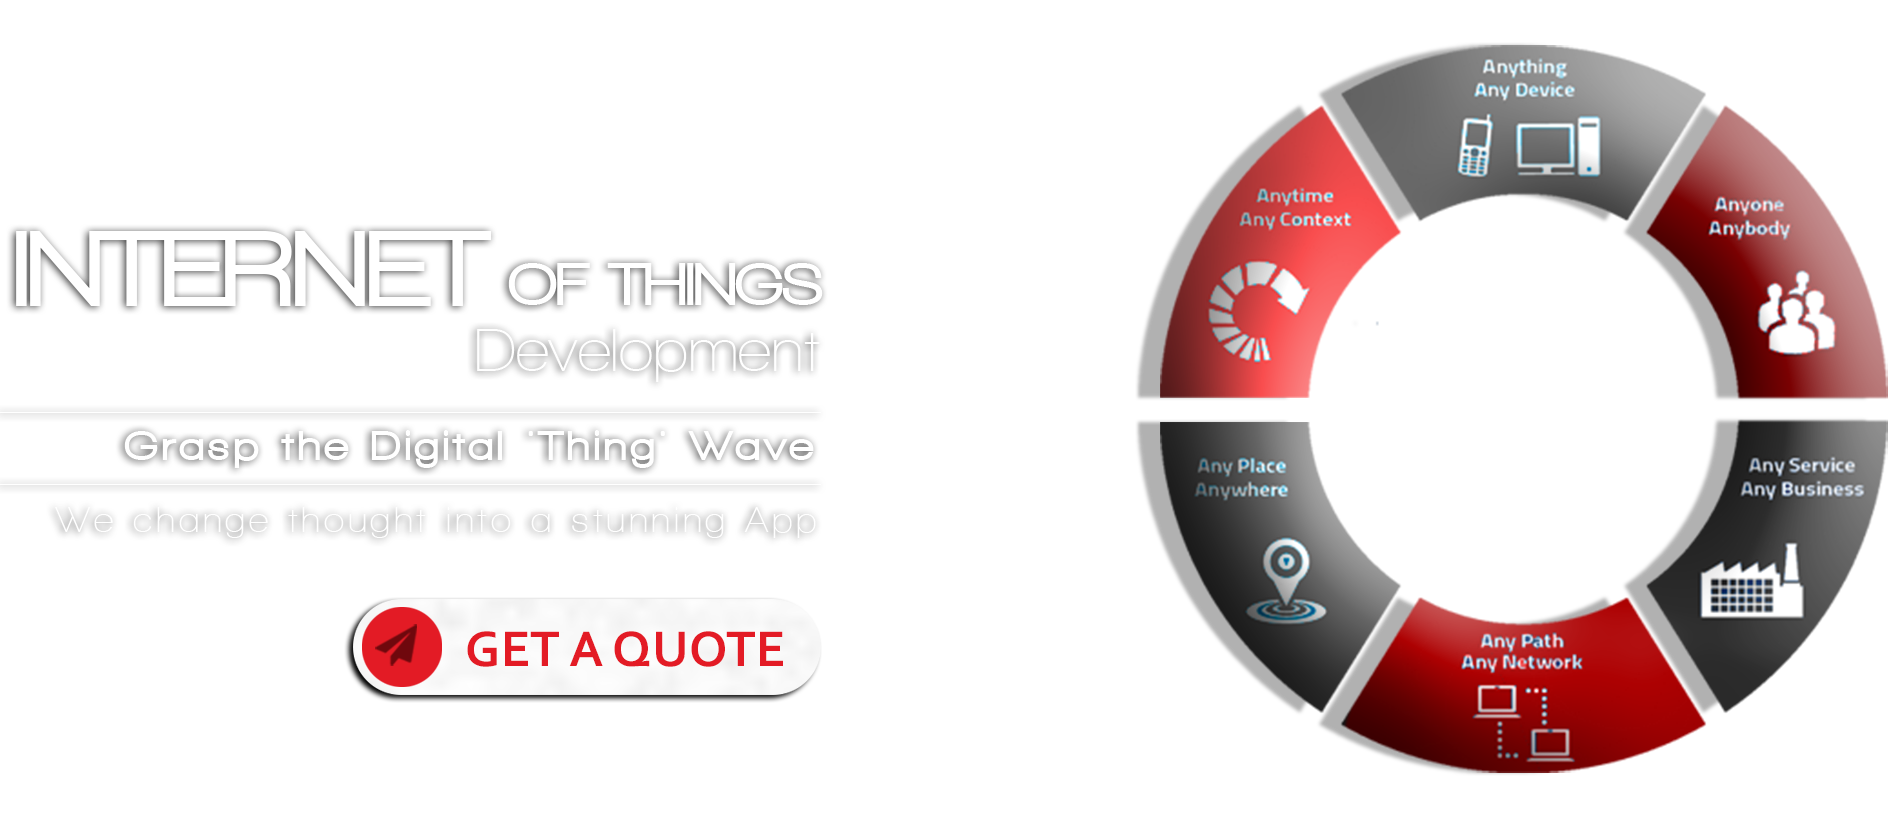 IoT applications development services